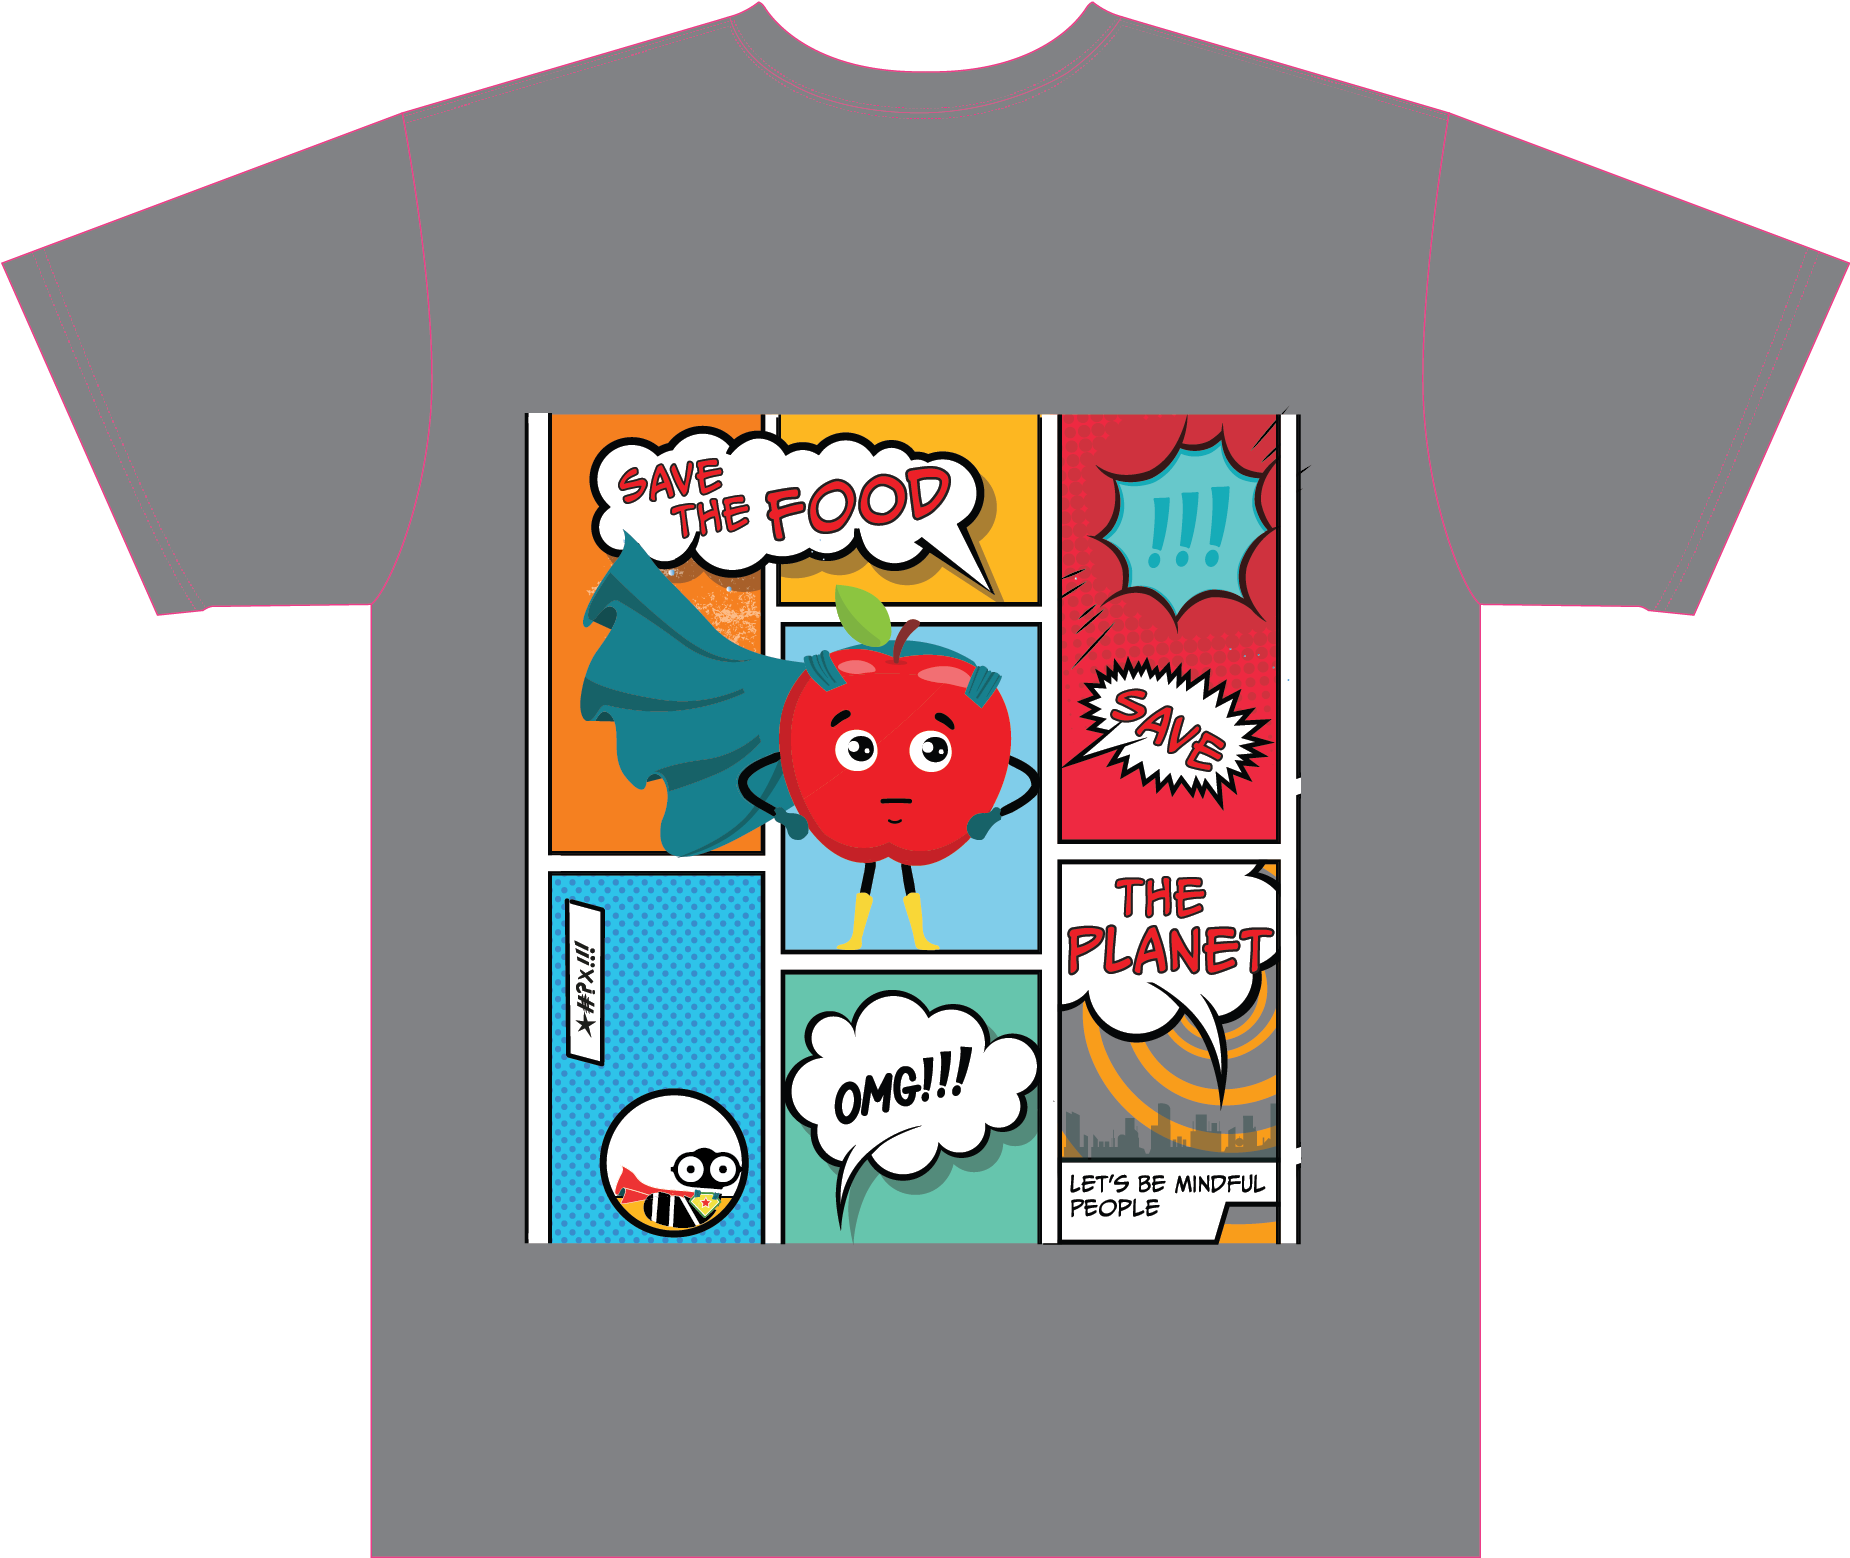 TSHIRT DESIGN  for  Mindful Waste  a non-for-profit. Their mission is to ELIMINATING FOOD WASTE THROUGH EDUCATION, PREVENTION & RECOVERY